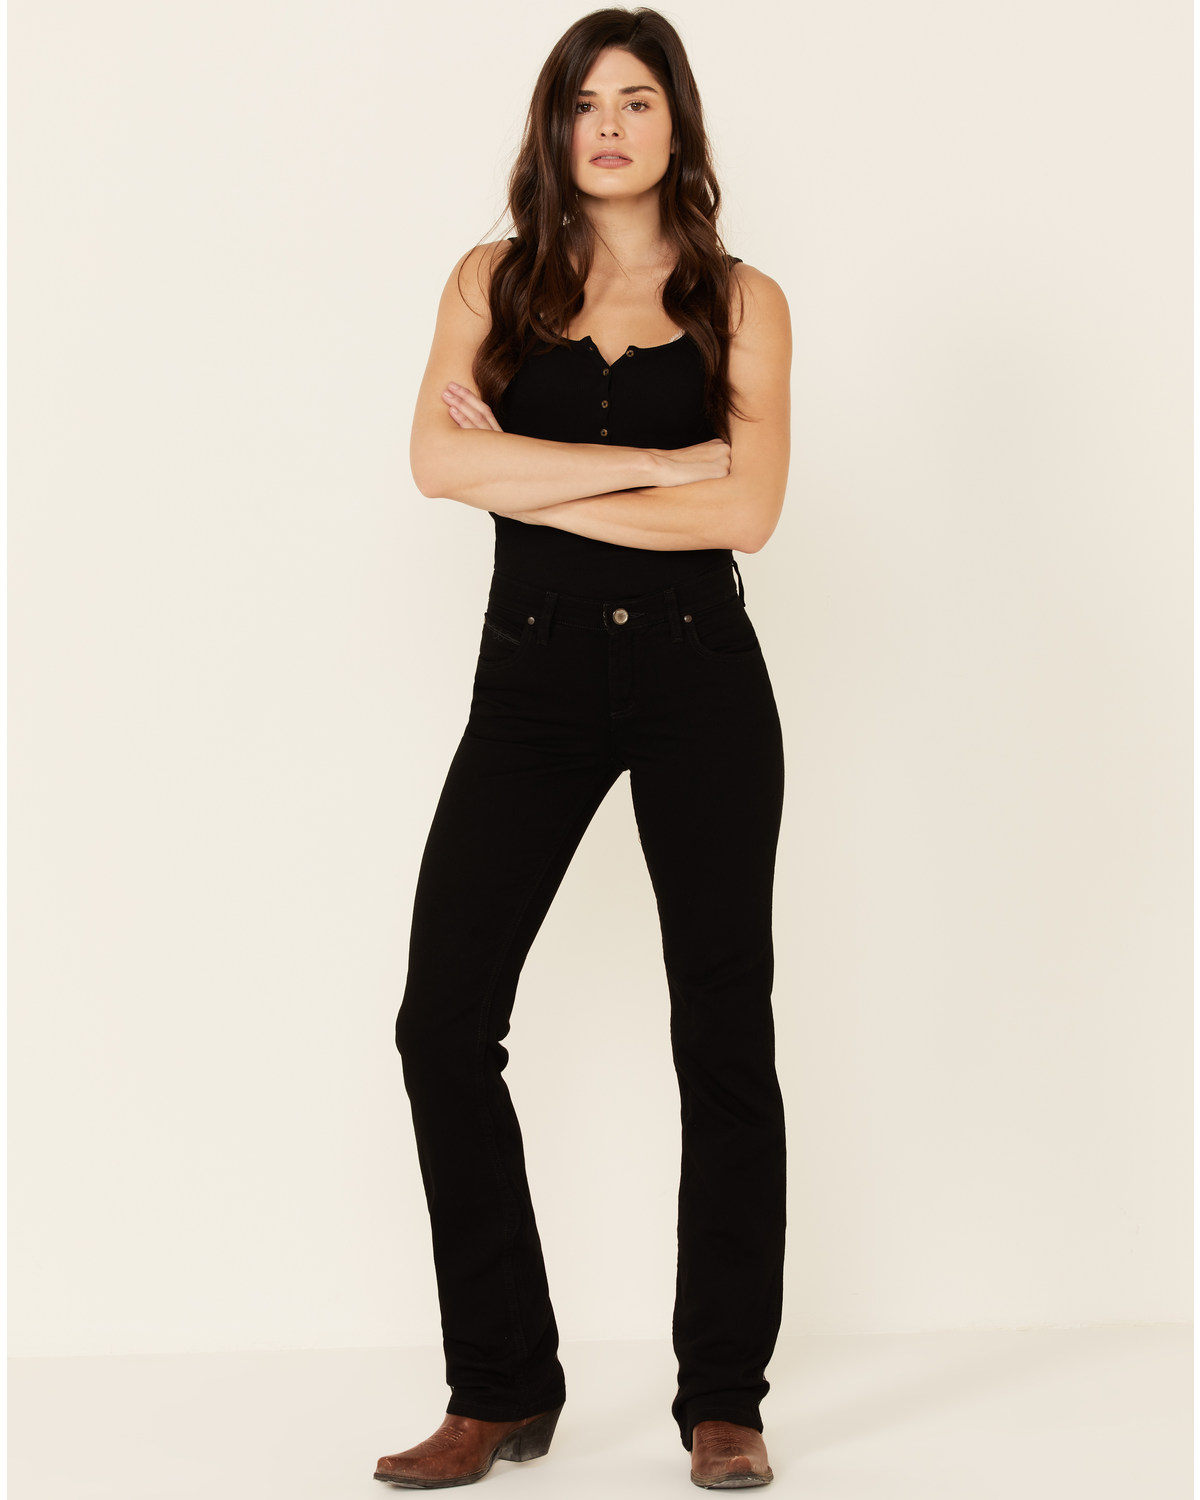 cdbaf847 Zoomed Image Wrangler Women's Q-Baby Mid Rise Cowgirl Cut Ultimate Riding  Jeans, Blk Magic,